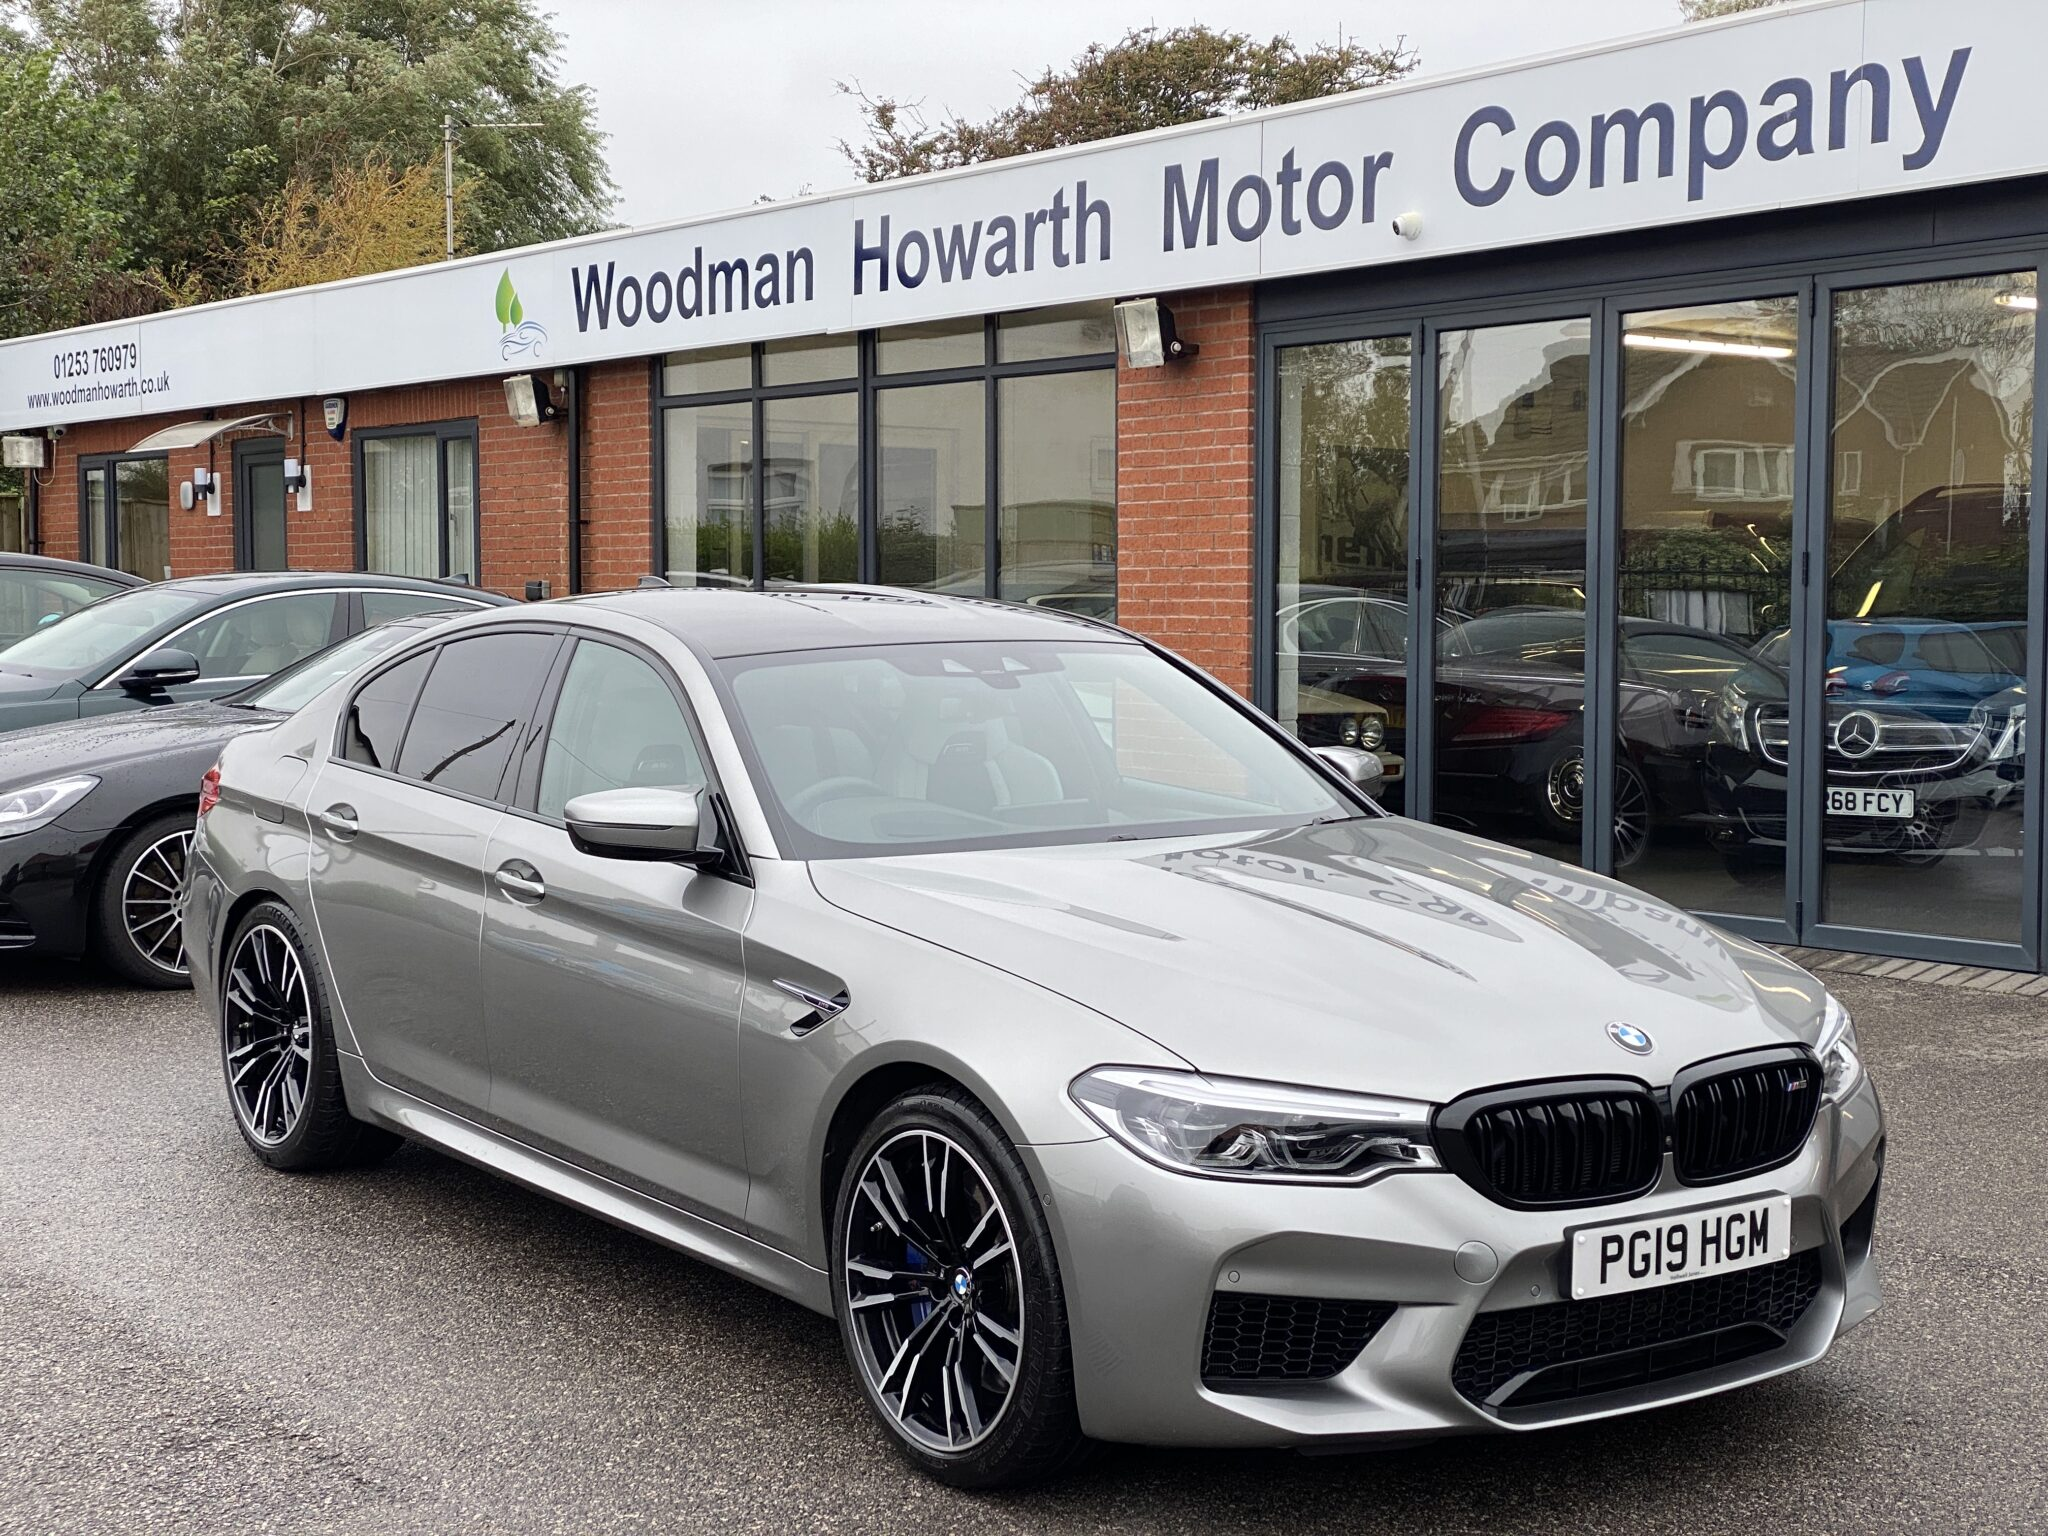 2019 19 BMW M5 4.4 V8 XDRIVE SALOON 600 BHP Comfort Pack High Spec Low Miles Pristine